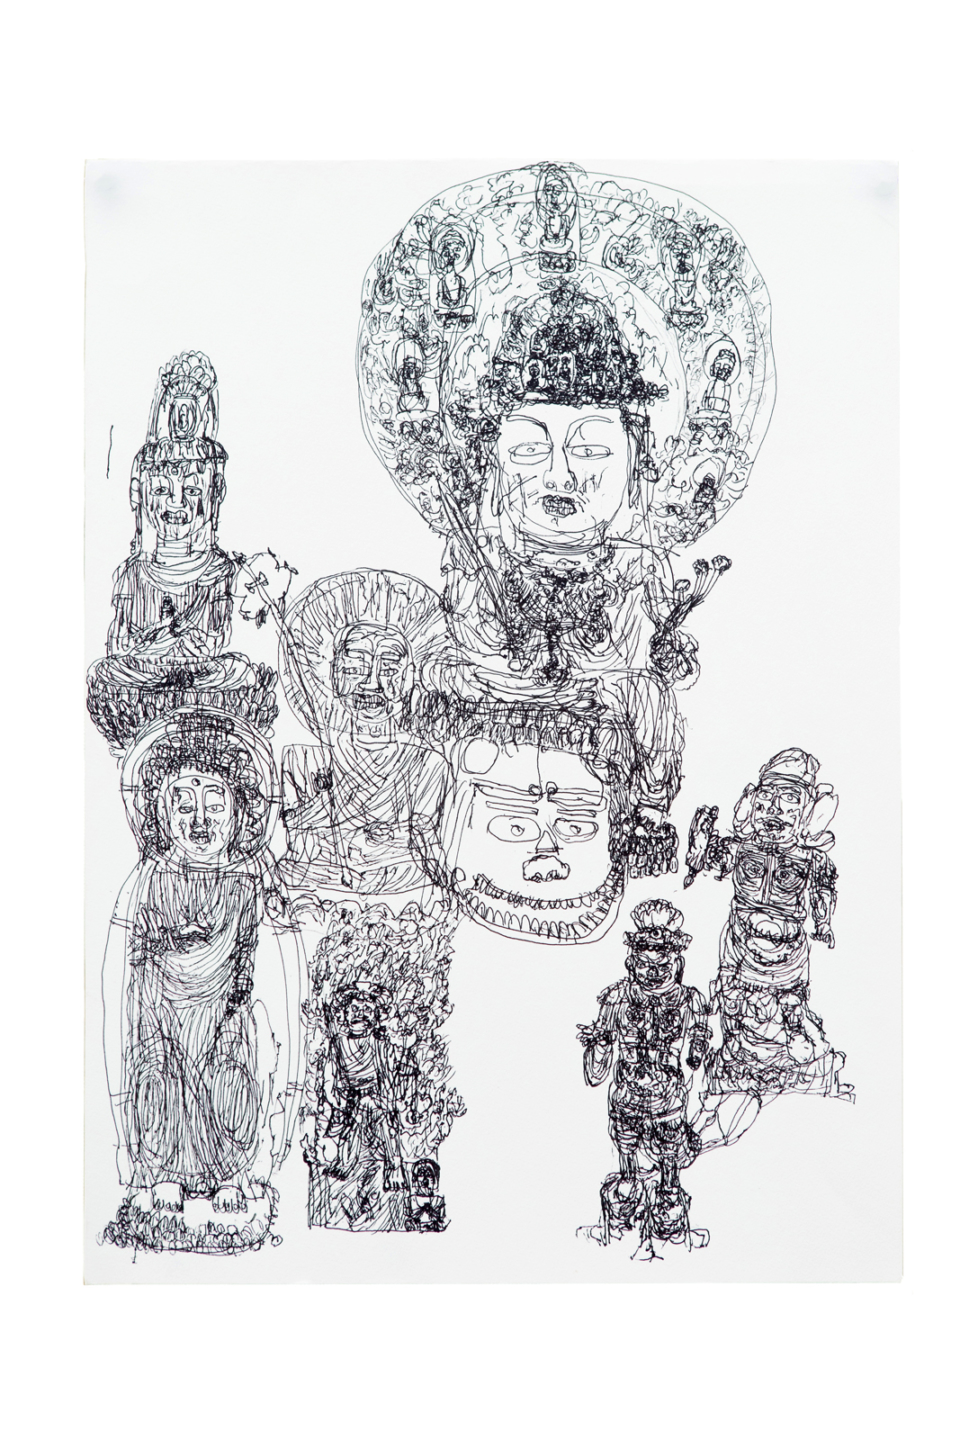 (About the photo)«A series of buddhas 2» / Pigment pen /400×550mm / 2018